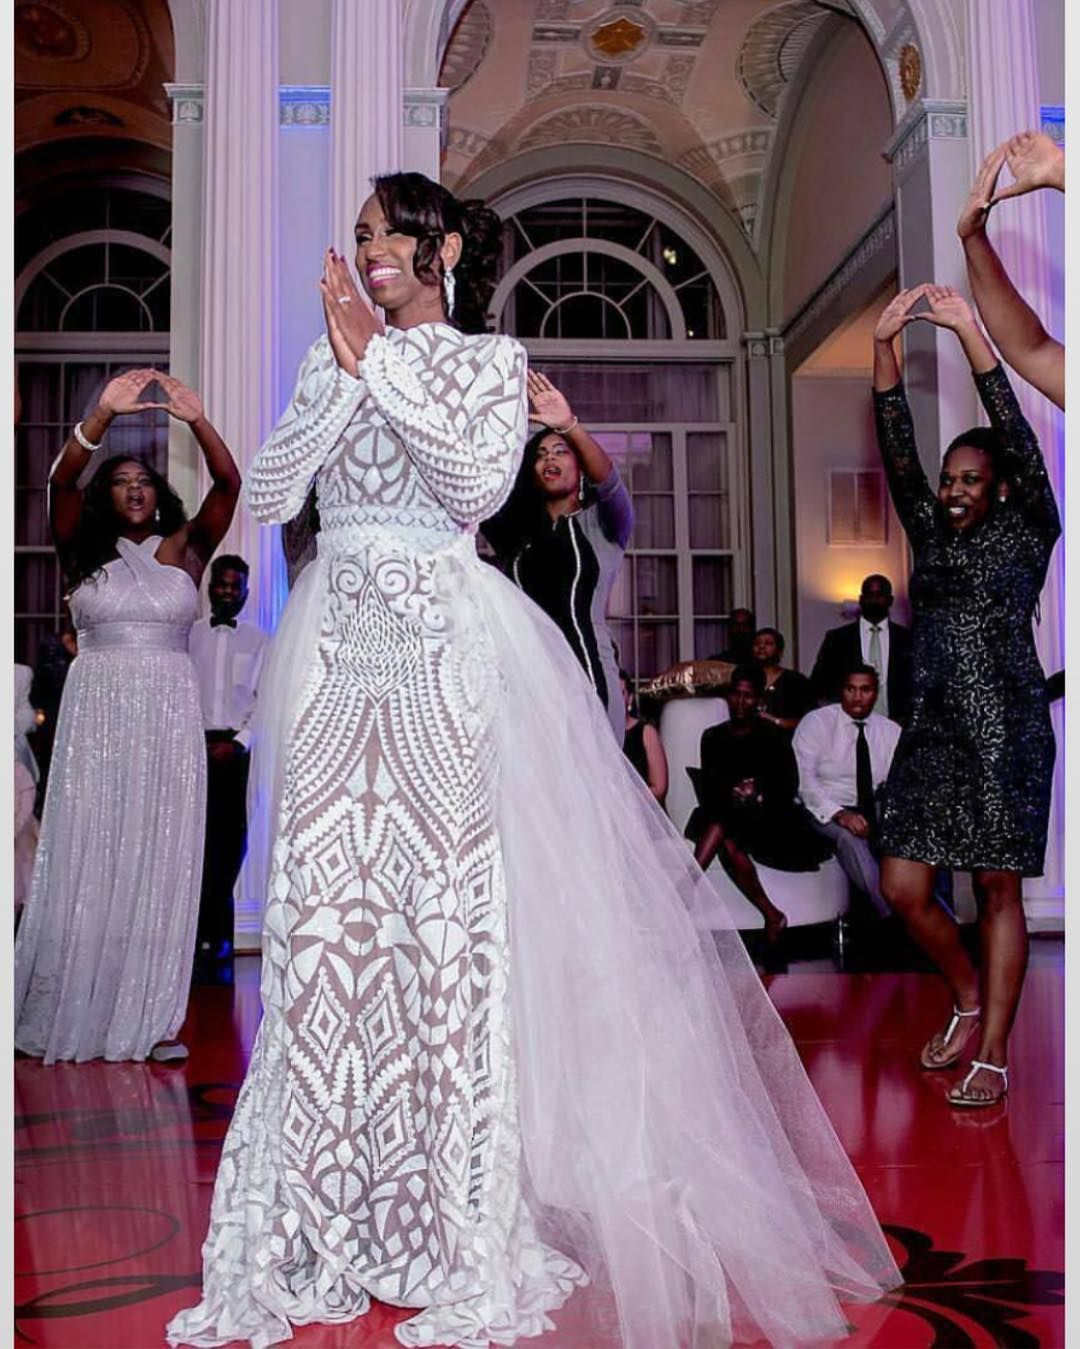 African Wedding Gown: Beautiful Dress @natttaylor ! : @milanesphotography Via